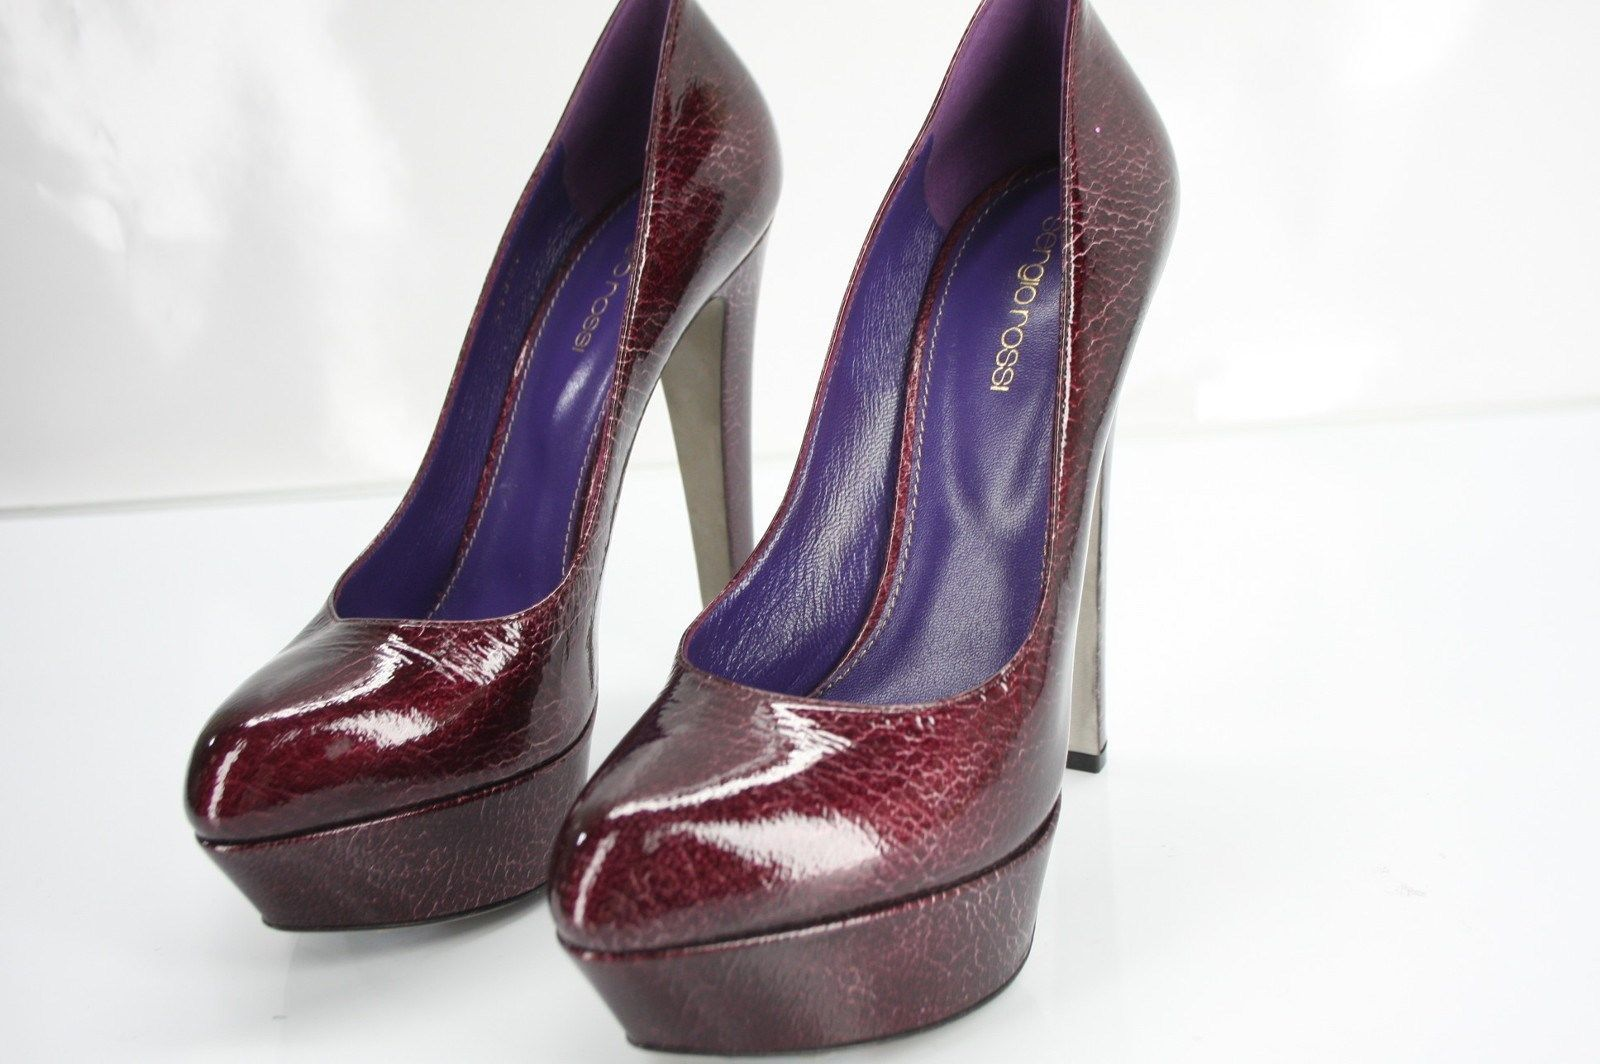 Sergio Rossi Patent Leather Miladys Platform Heel Pumps size 39 New $895 Women's